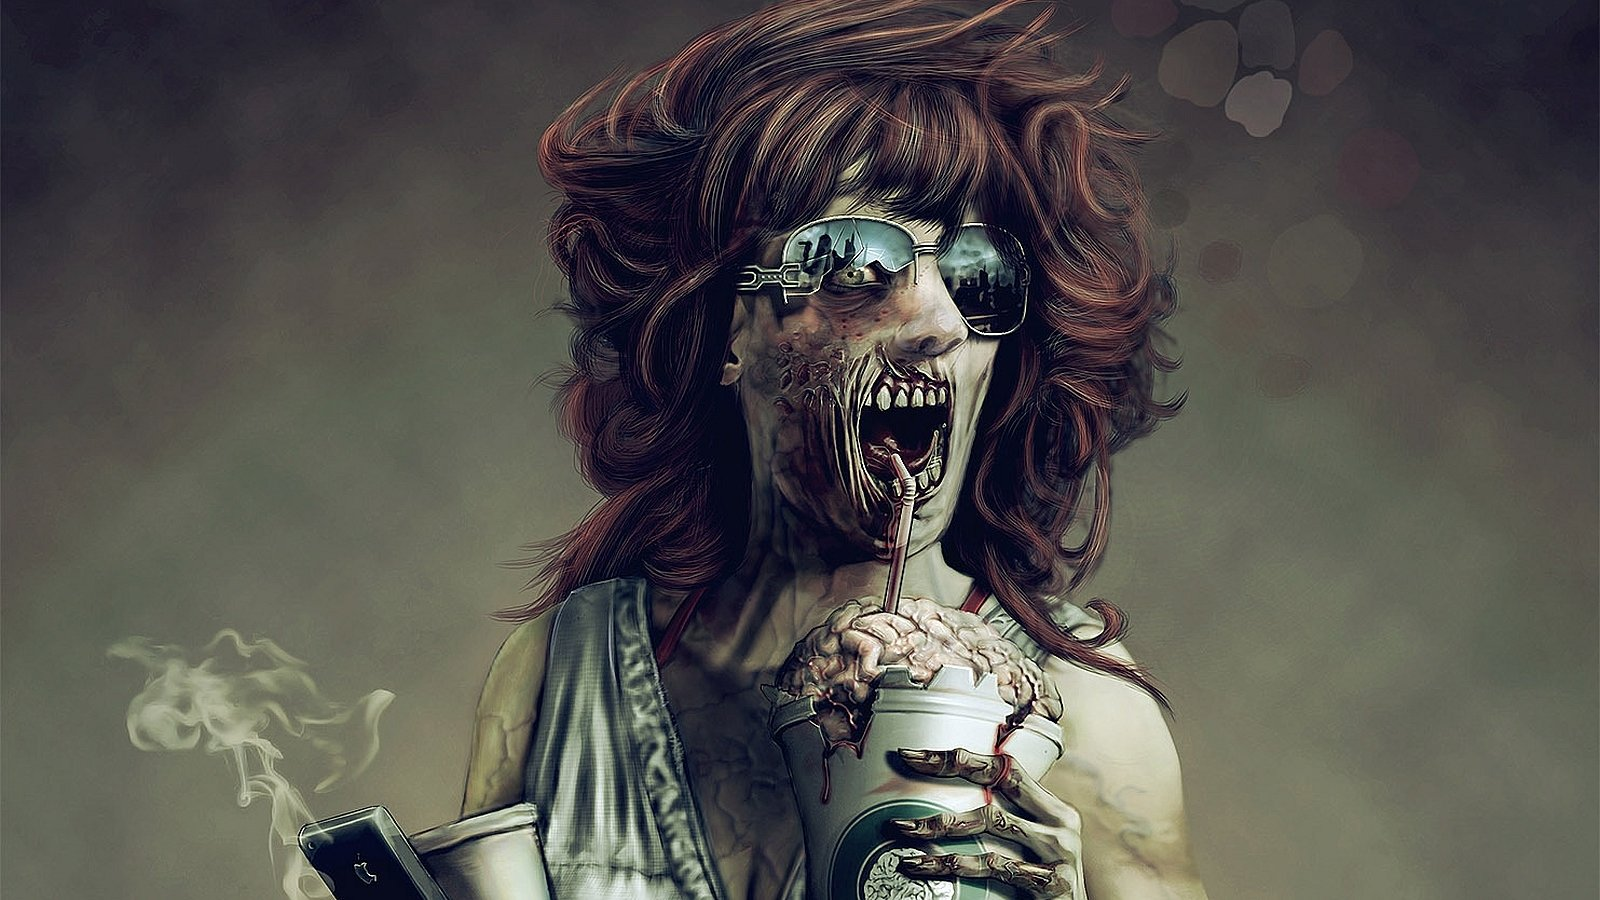 Download Hd 1600x900 Zombie Desktop Wallpaper ID:241348